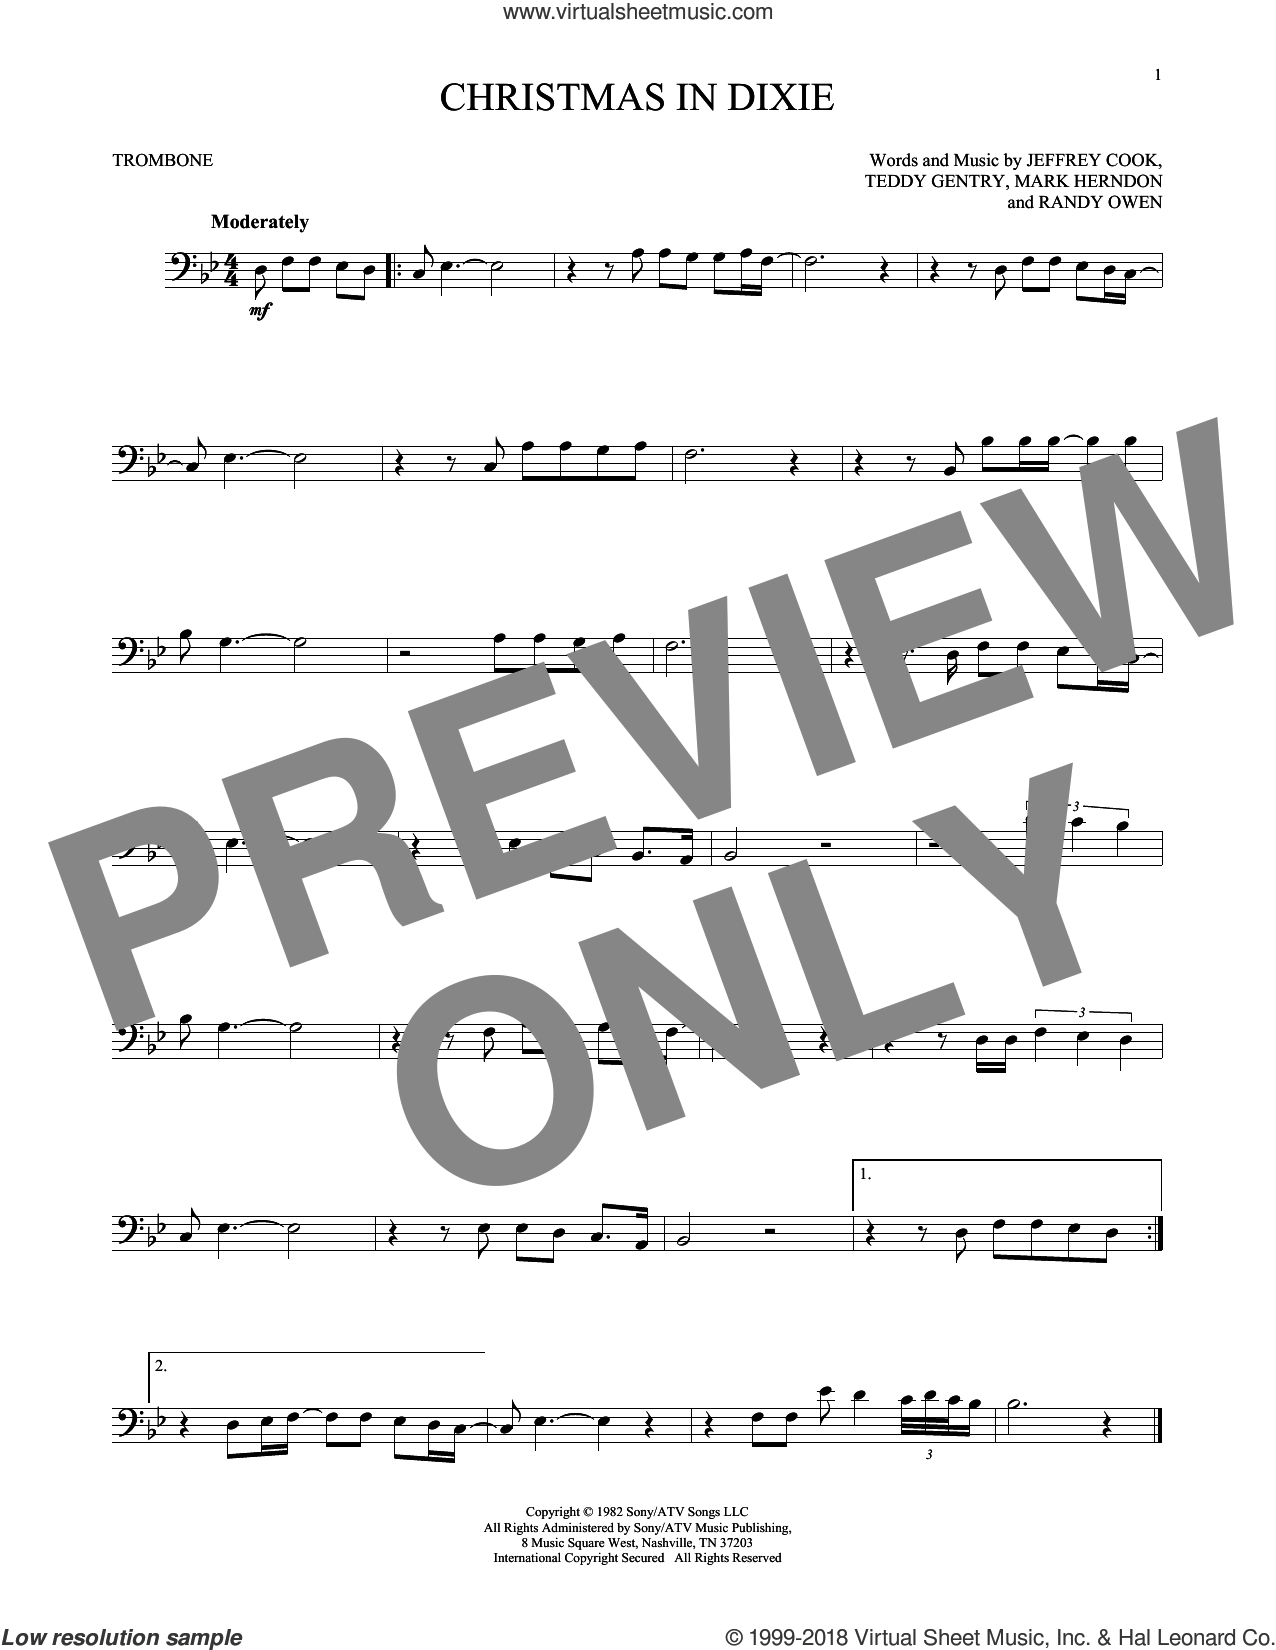 Christmas In Dixie sheet music for trombone solo by Teddy Gentry